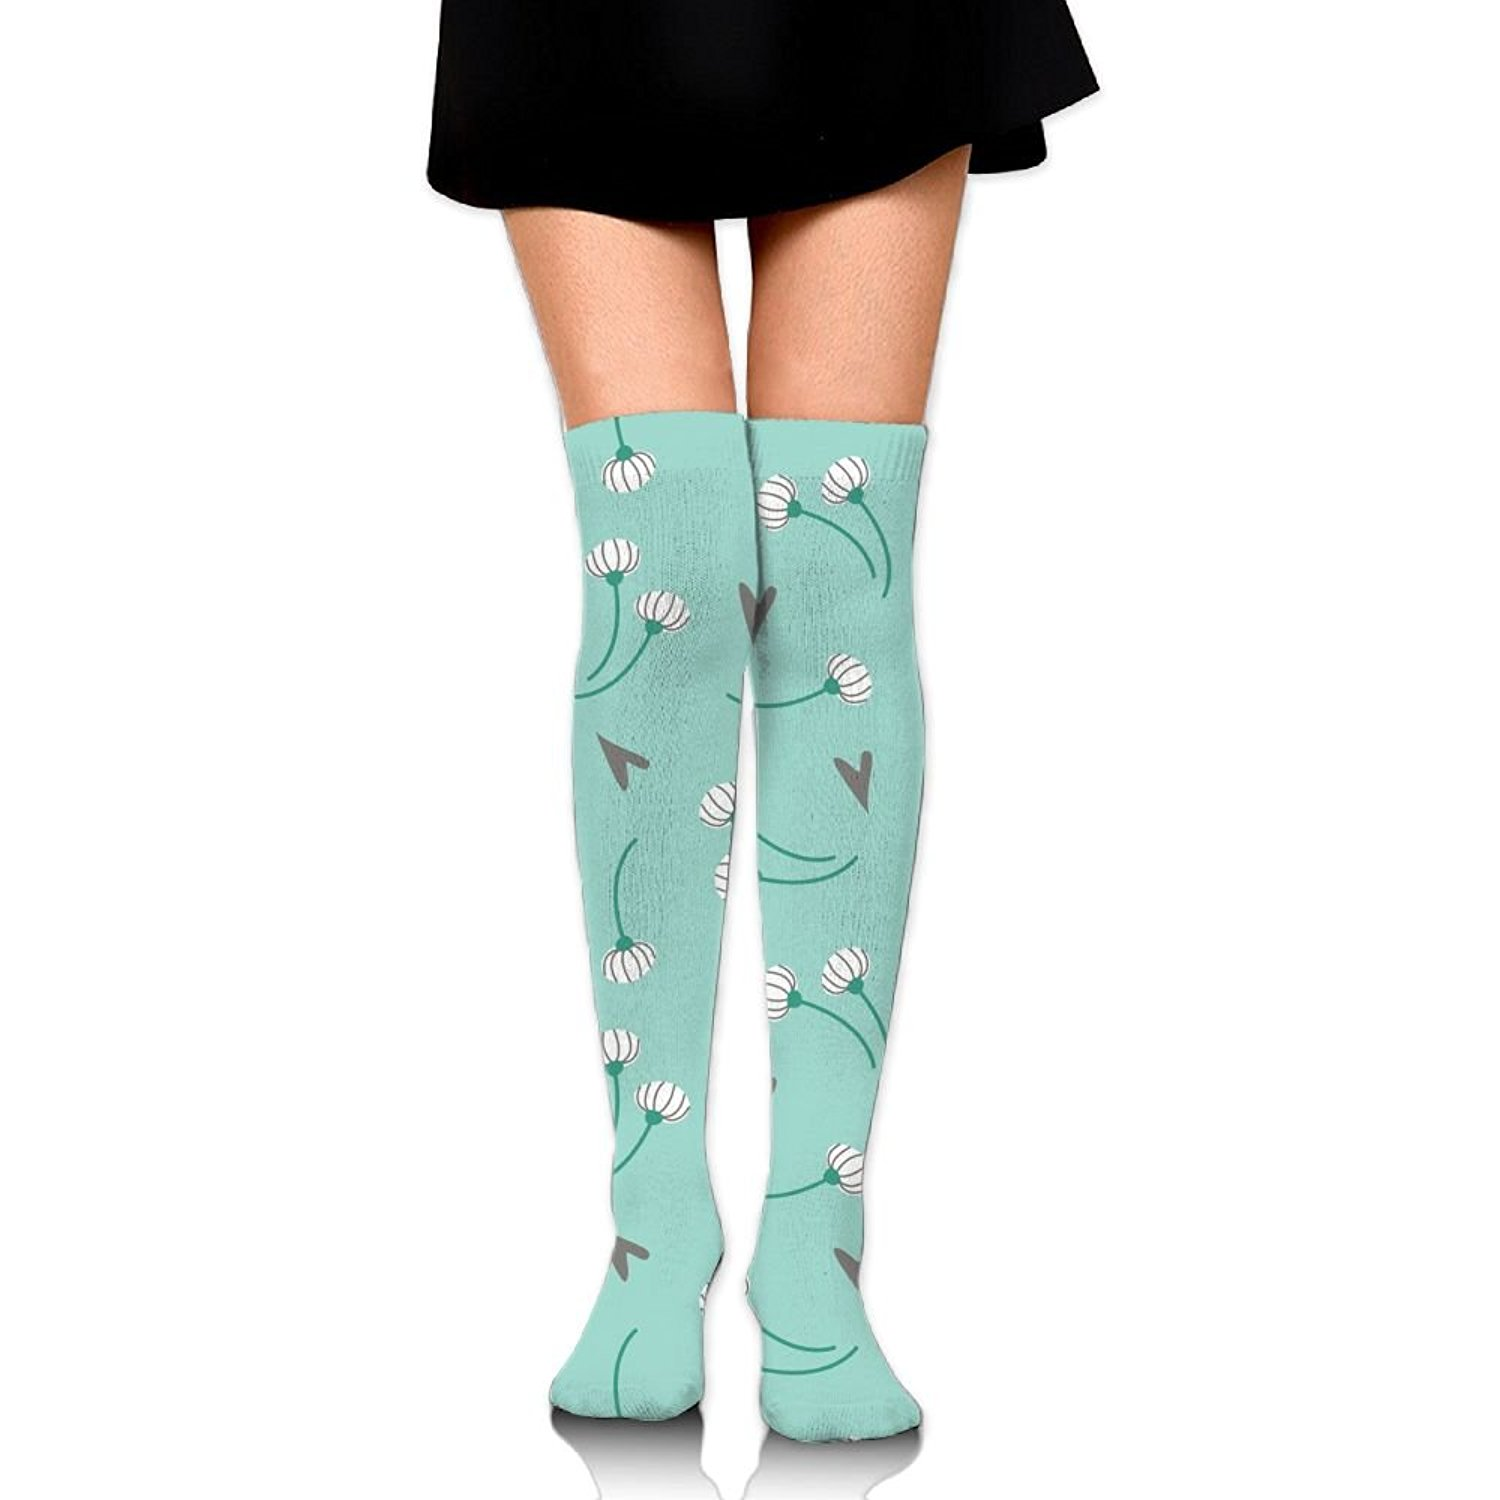 Zaqxsw Dandelion Women Retro Thigh High Socks Thermal Socks For Ladies